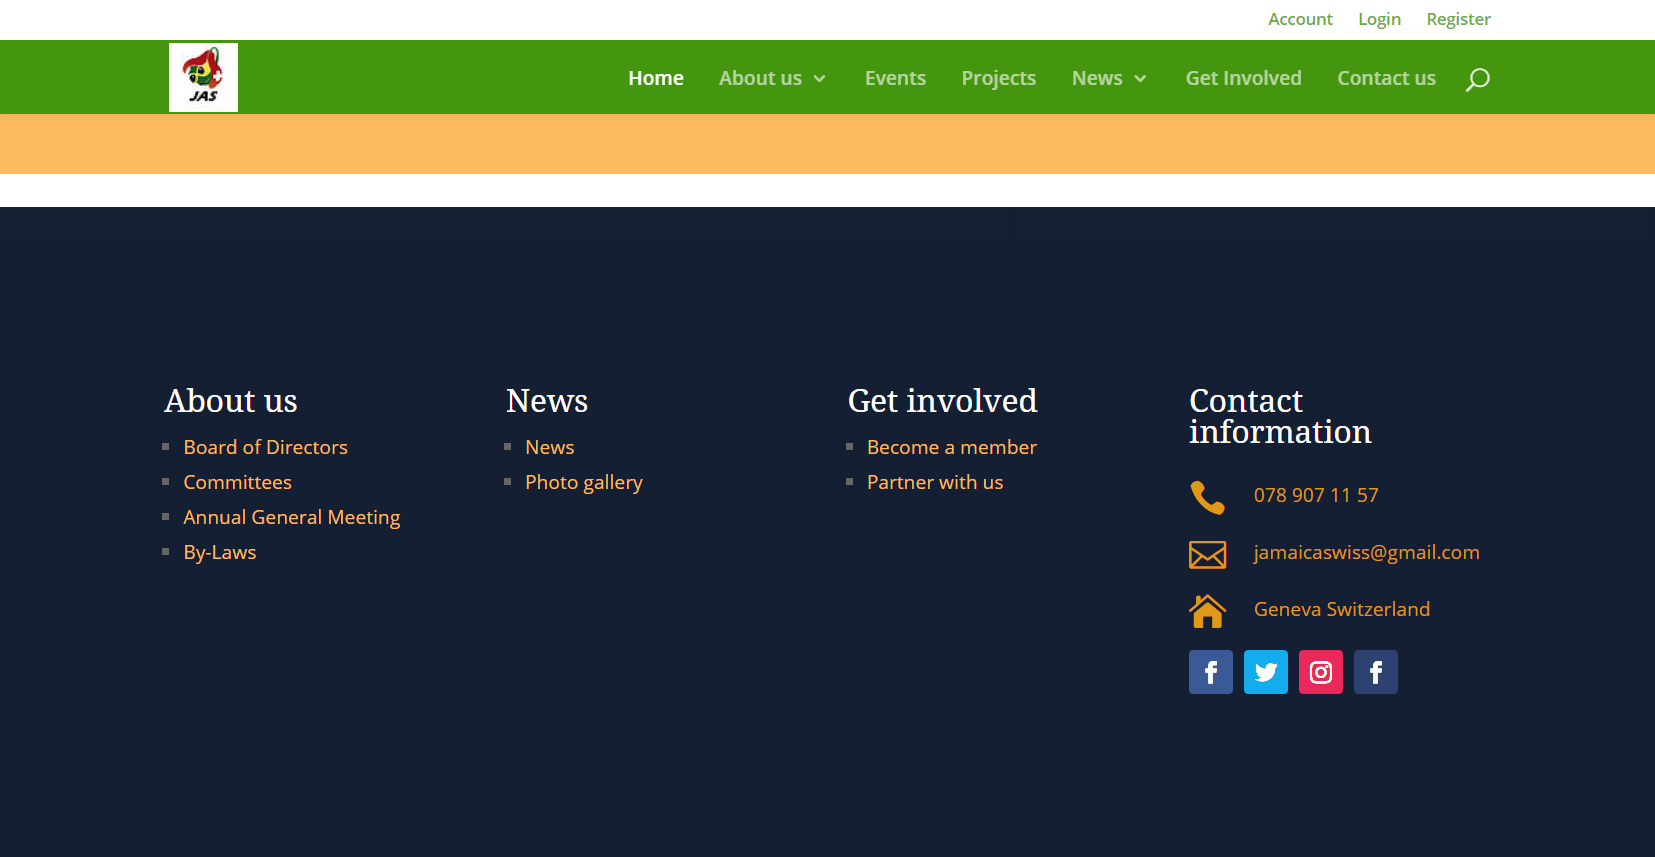 Jamaica Association footer